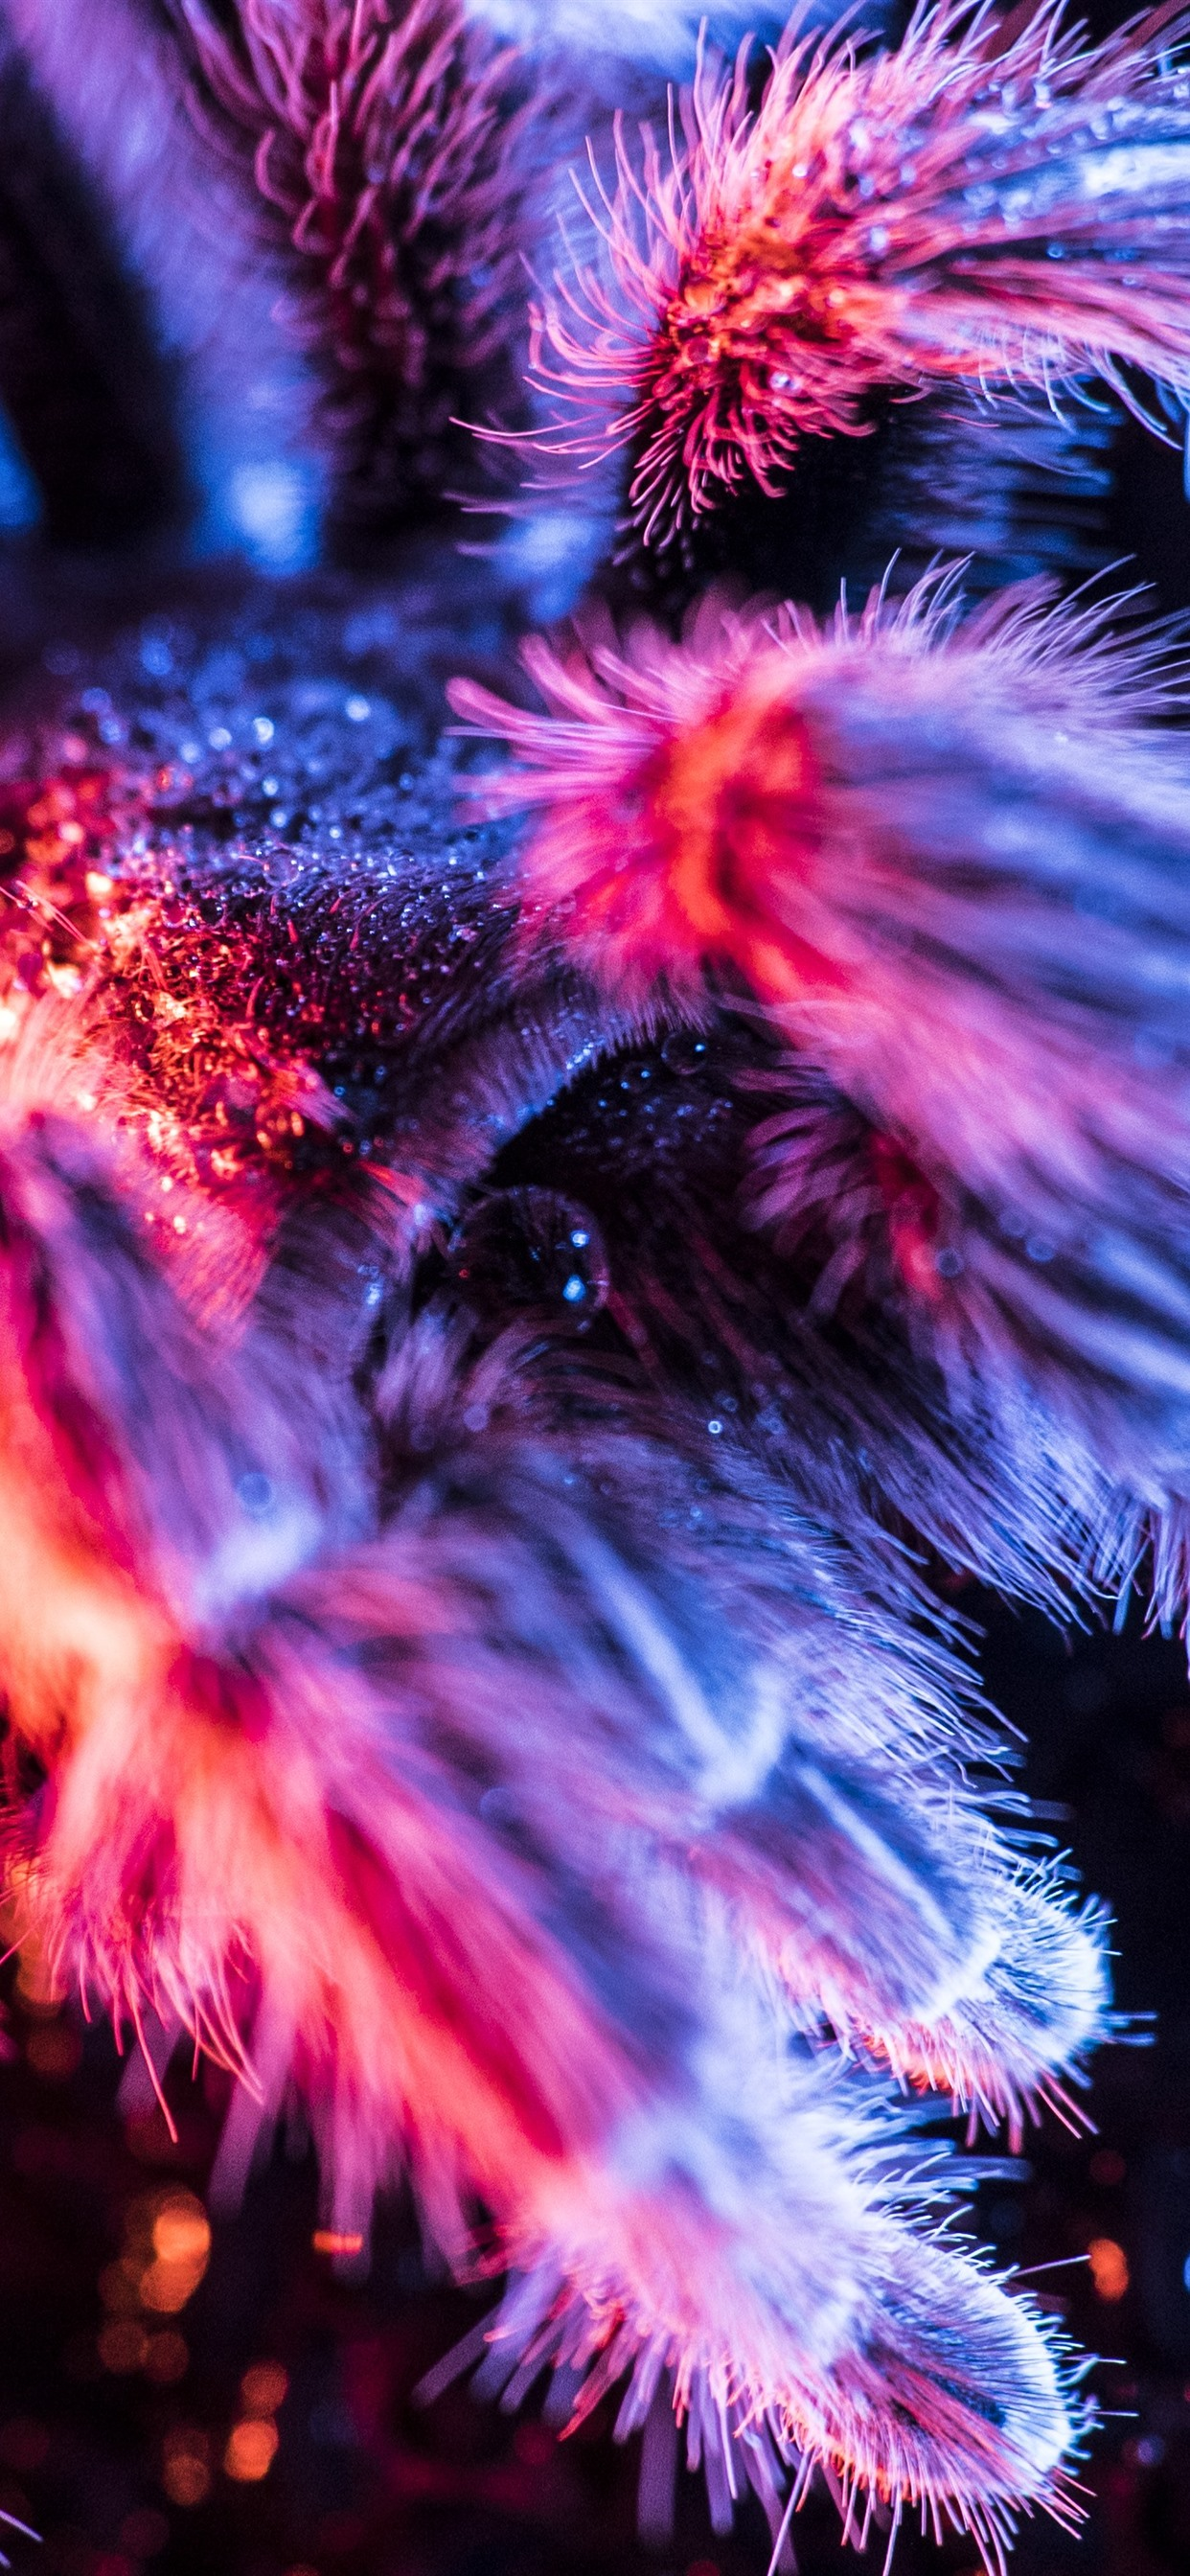 Spider Macro Photography Fluff Colorful Light 1242x2688 Iphone 11 Pro Xs Max Wallpaper Background Picture Image